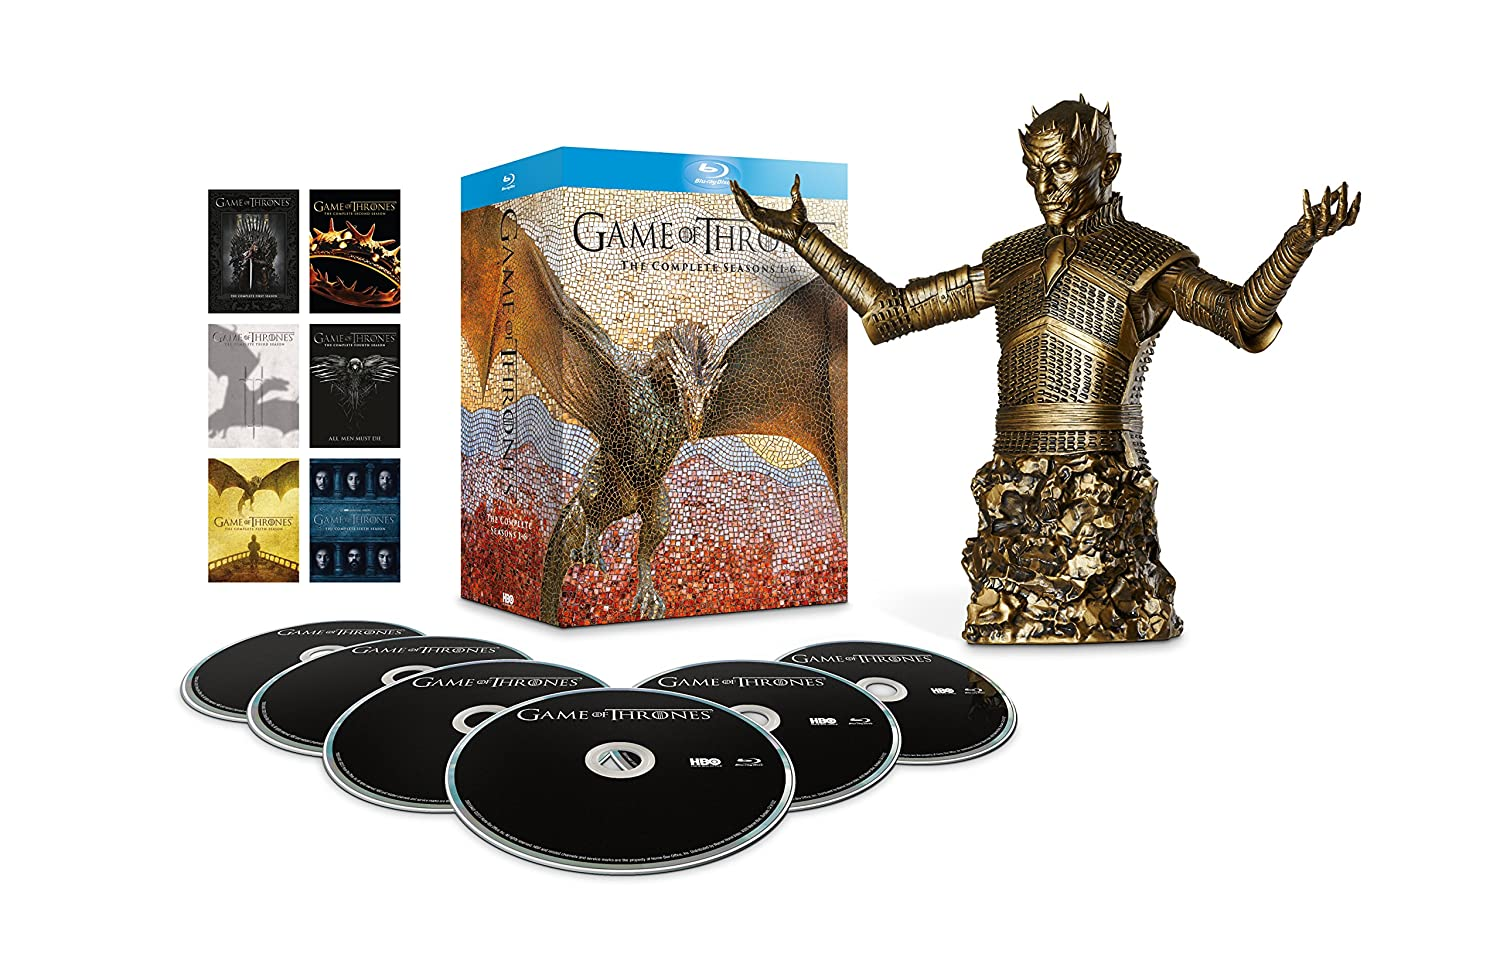 Game of Thrones - Season 1-6 Bronze Bust Edition Blu-ray